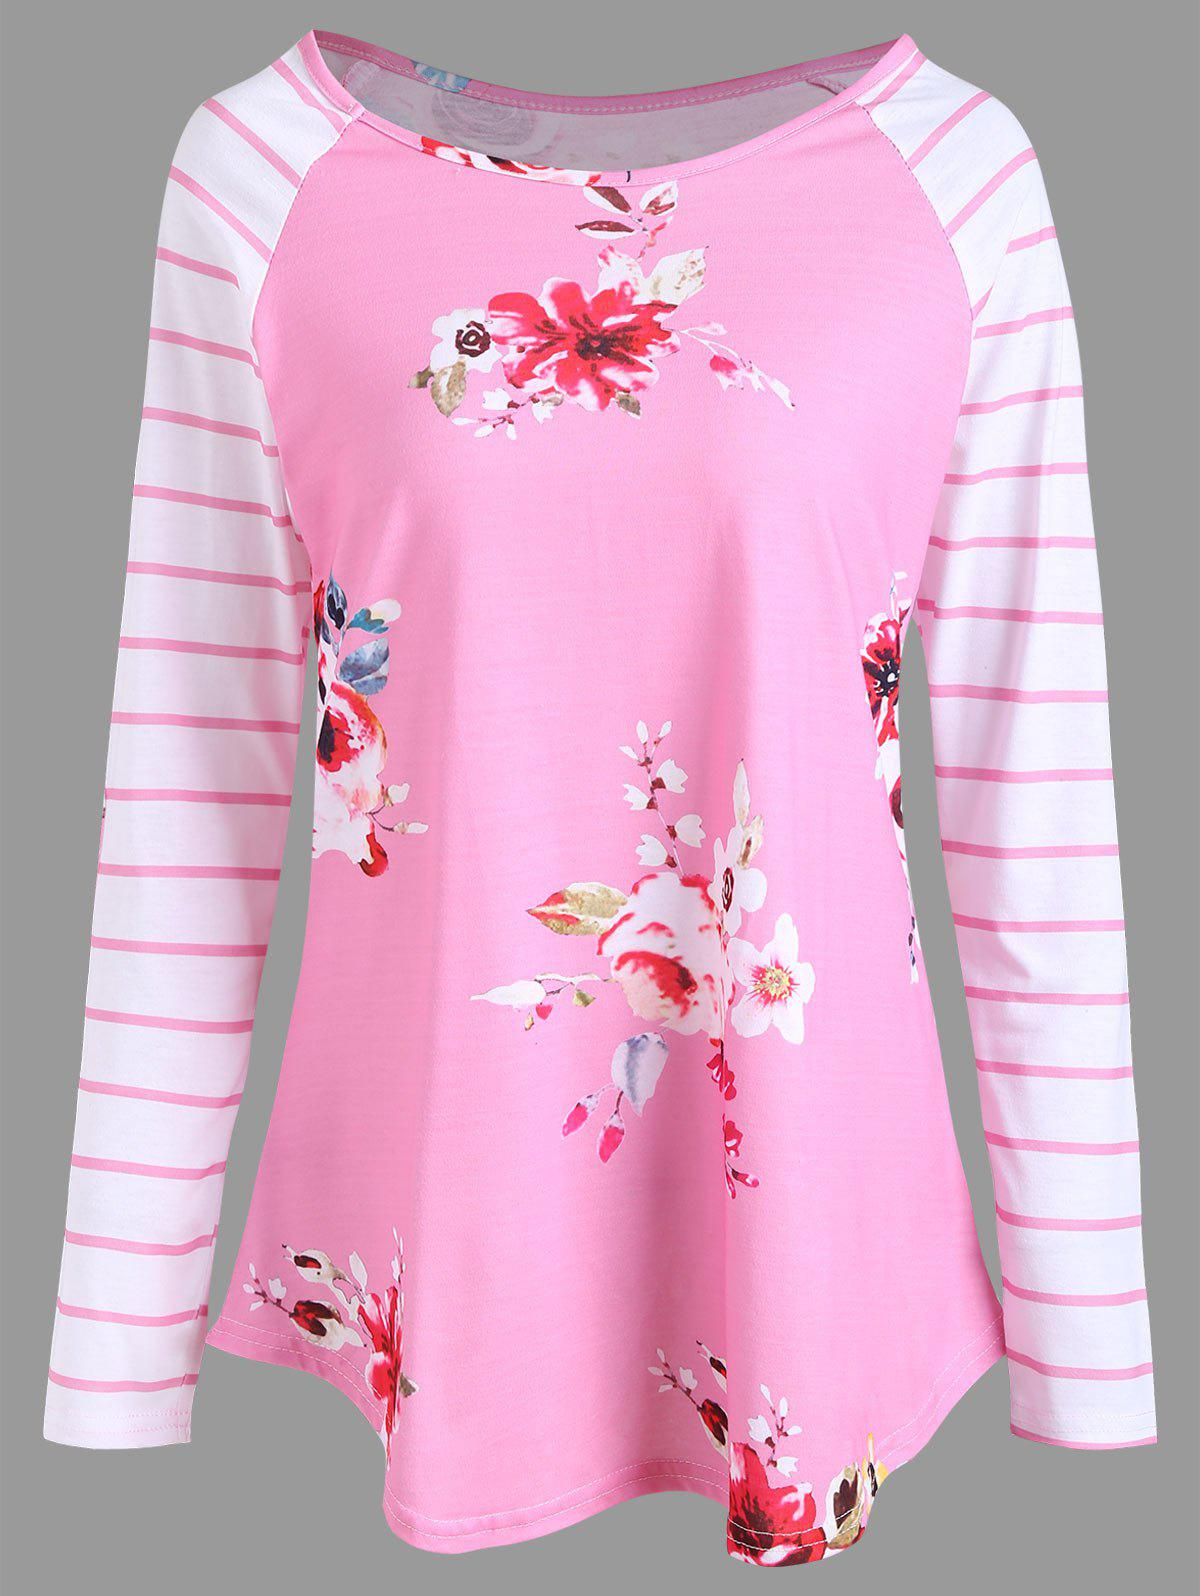 Floral Print Striped Tunic T-shirt - PINK S